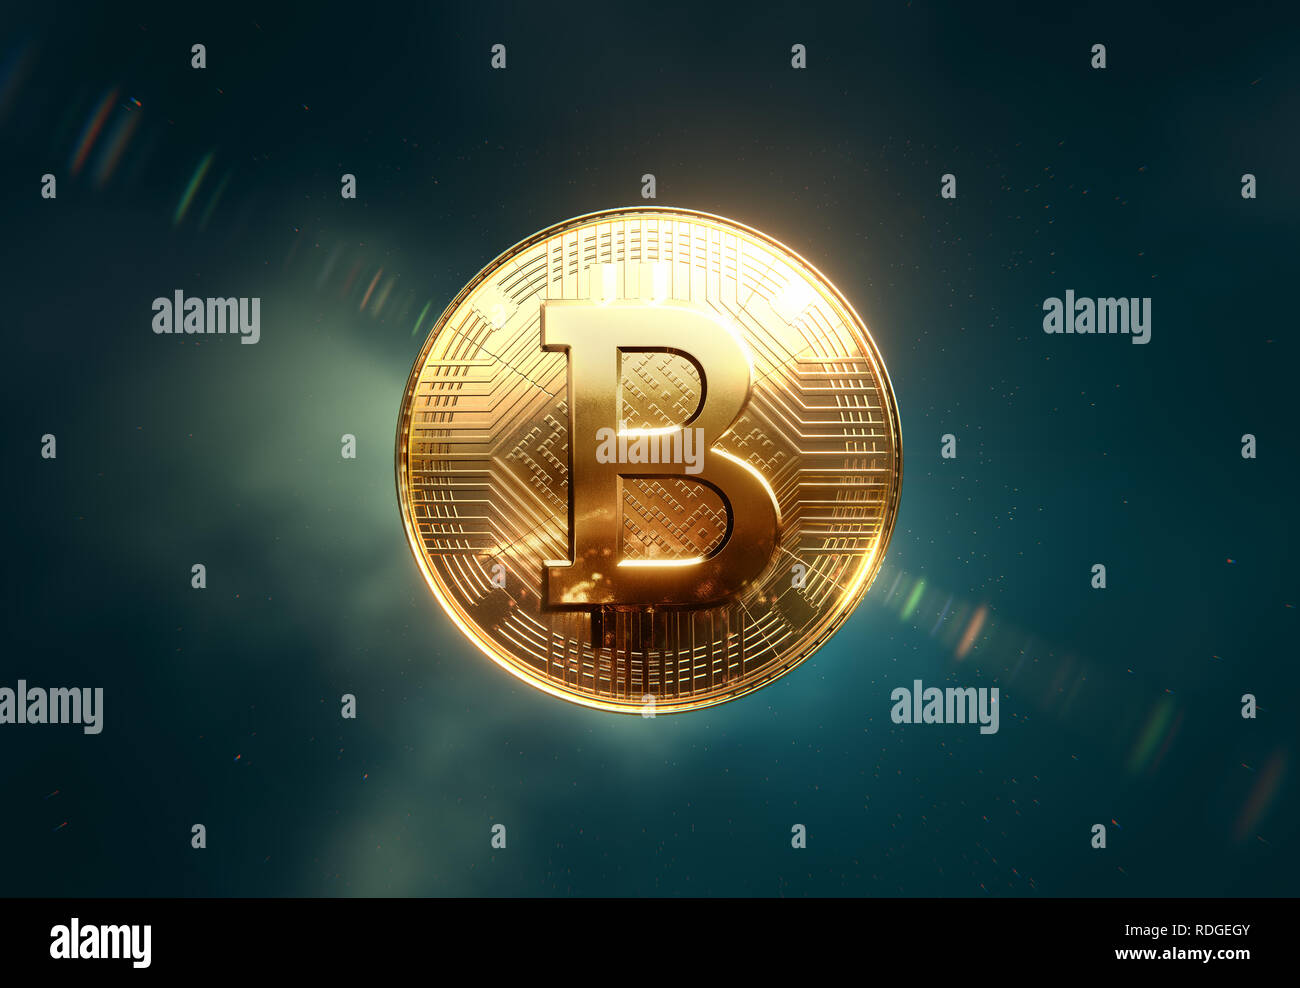 Golden Bitcoin coin, front view in space, clean background, 3D illustration Stock Photo